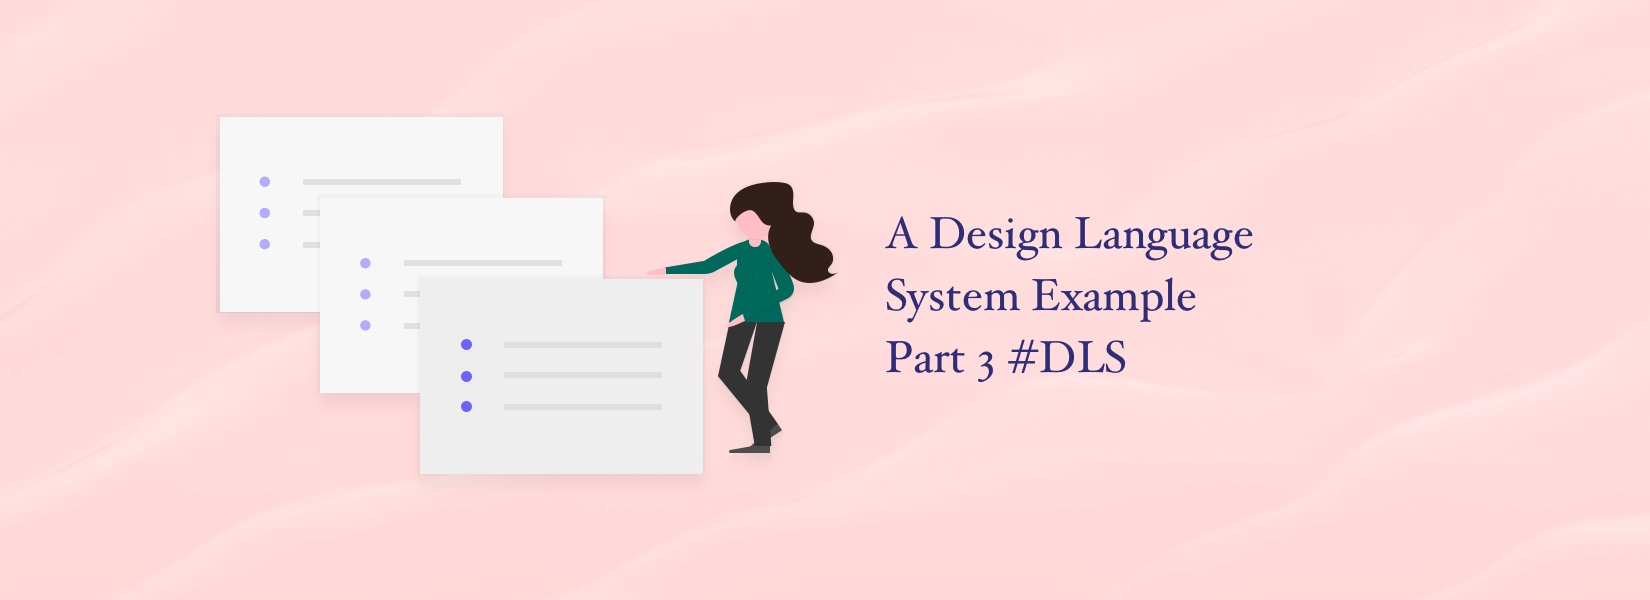 A Design Language System Example Part 3 #DLS